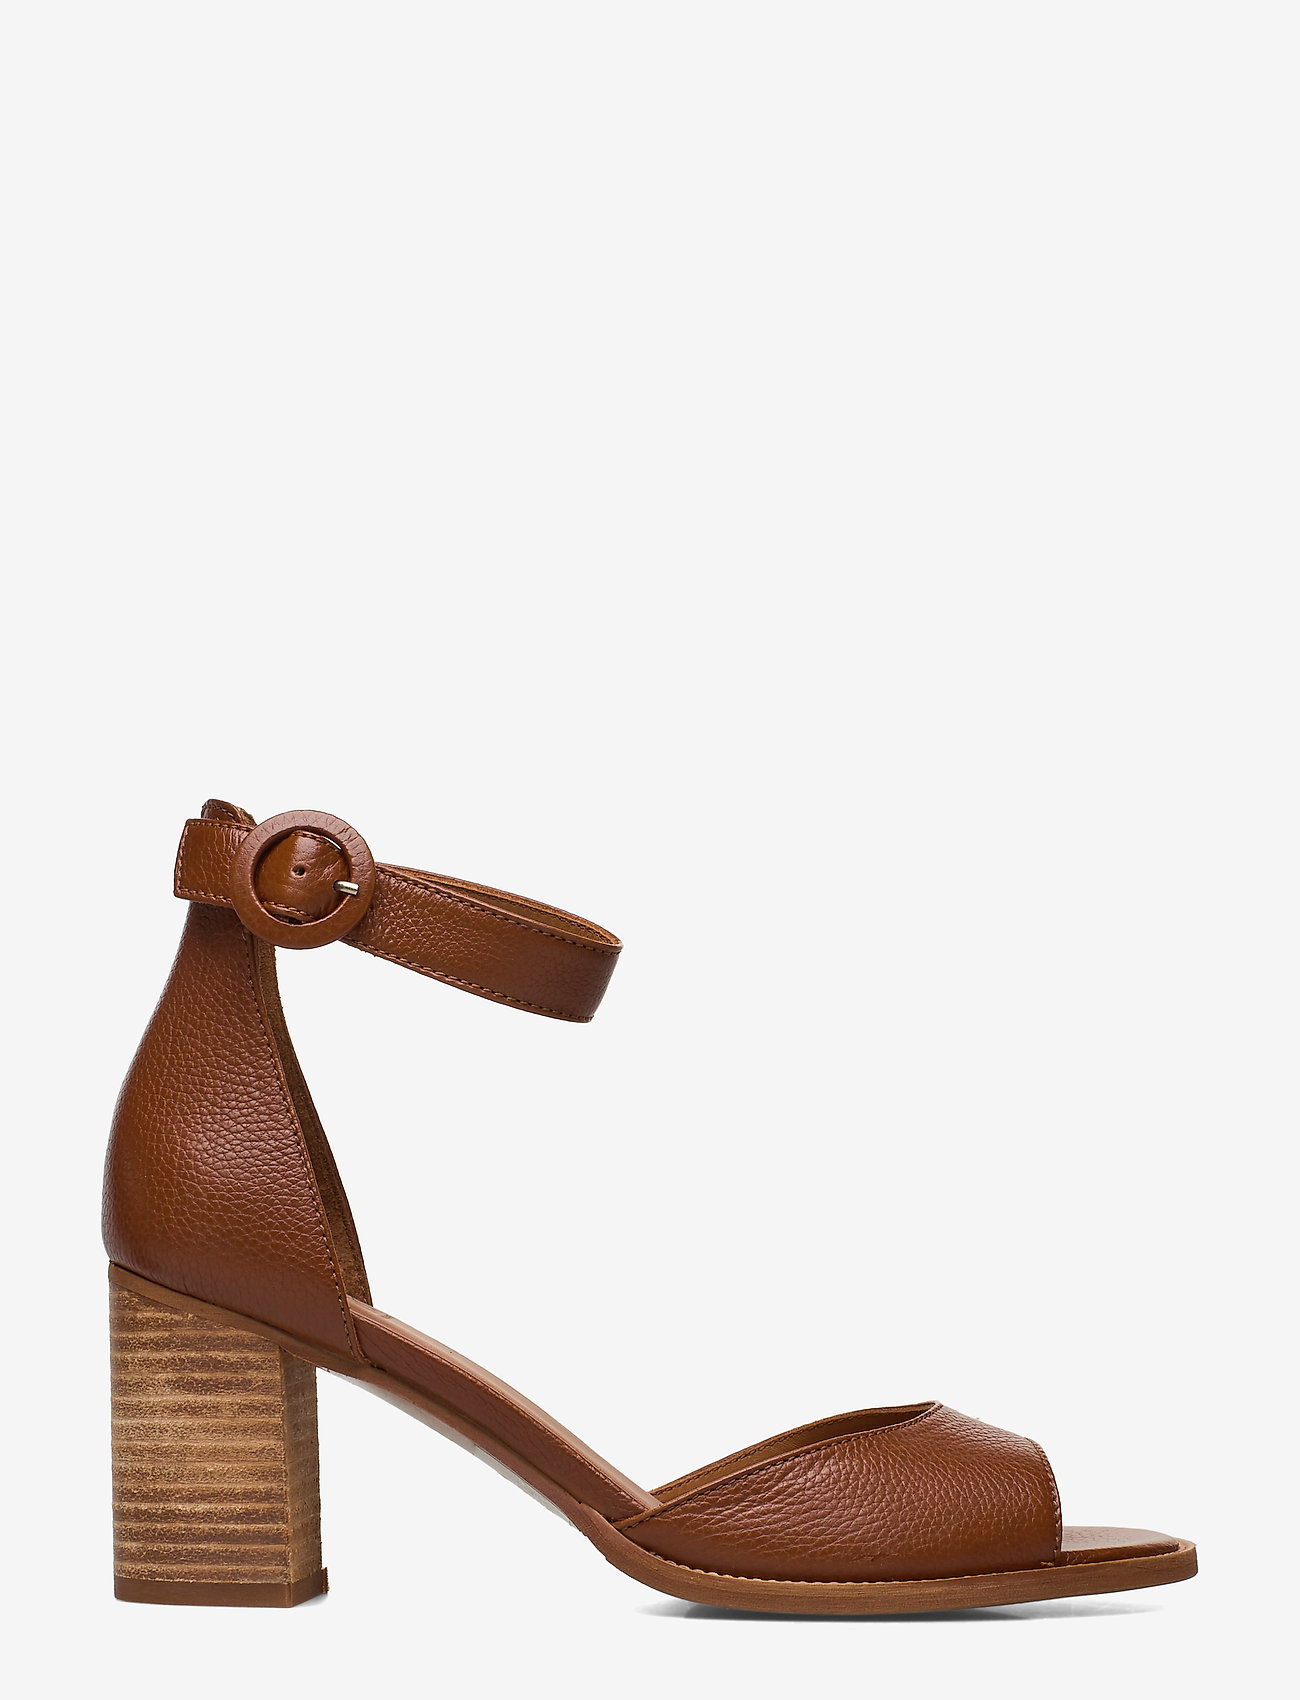 Billi Bi - SHOES - høyhælte sandaler - cognac 5144 buffalo 850 - 1